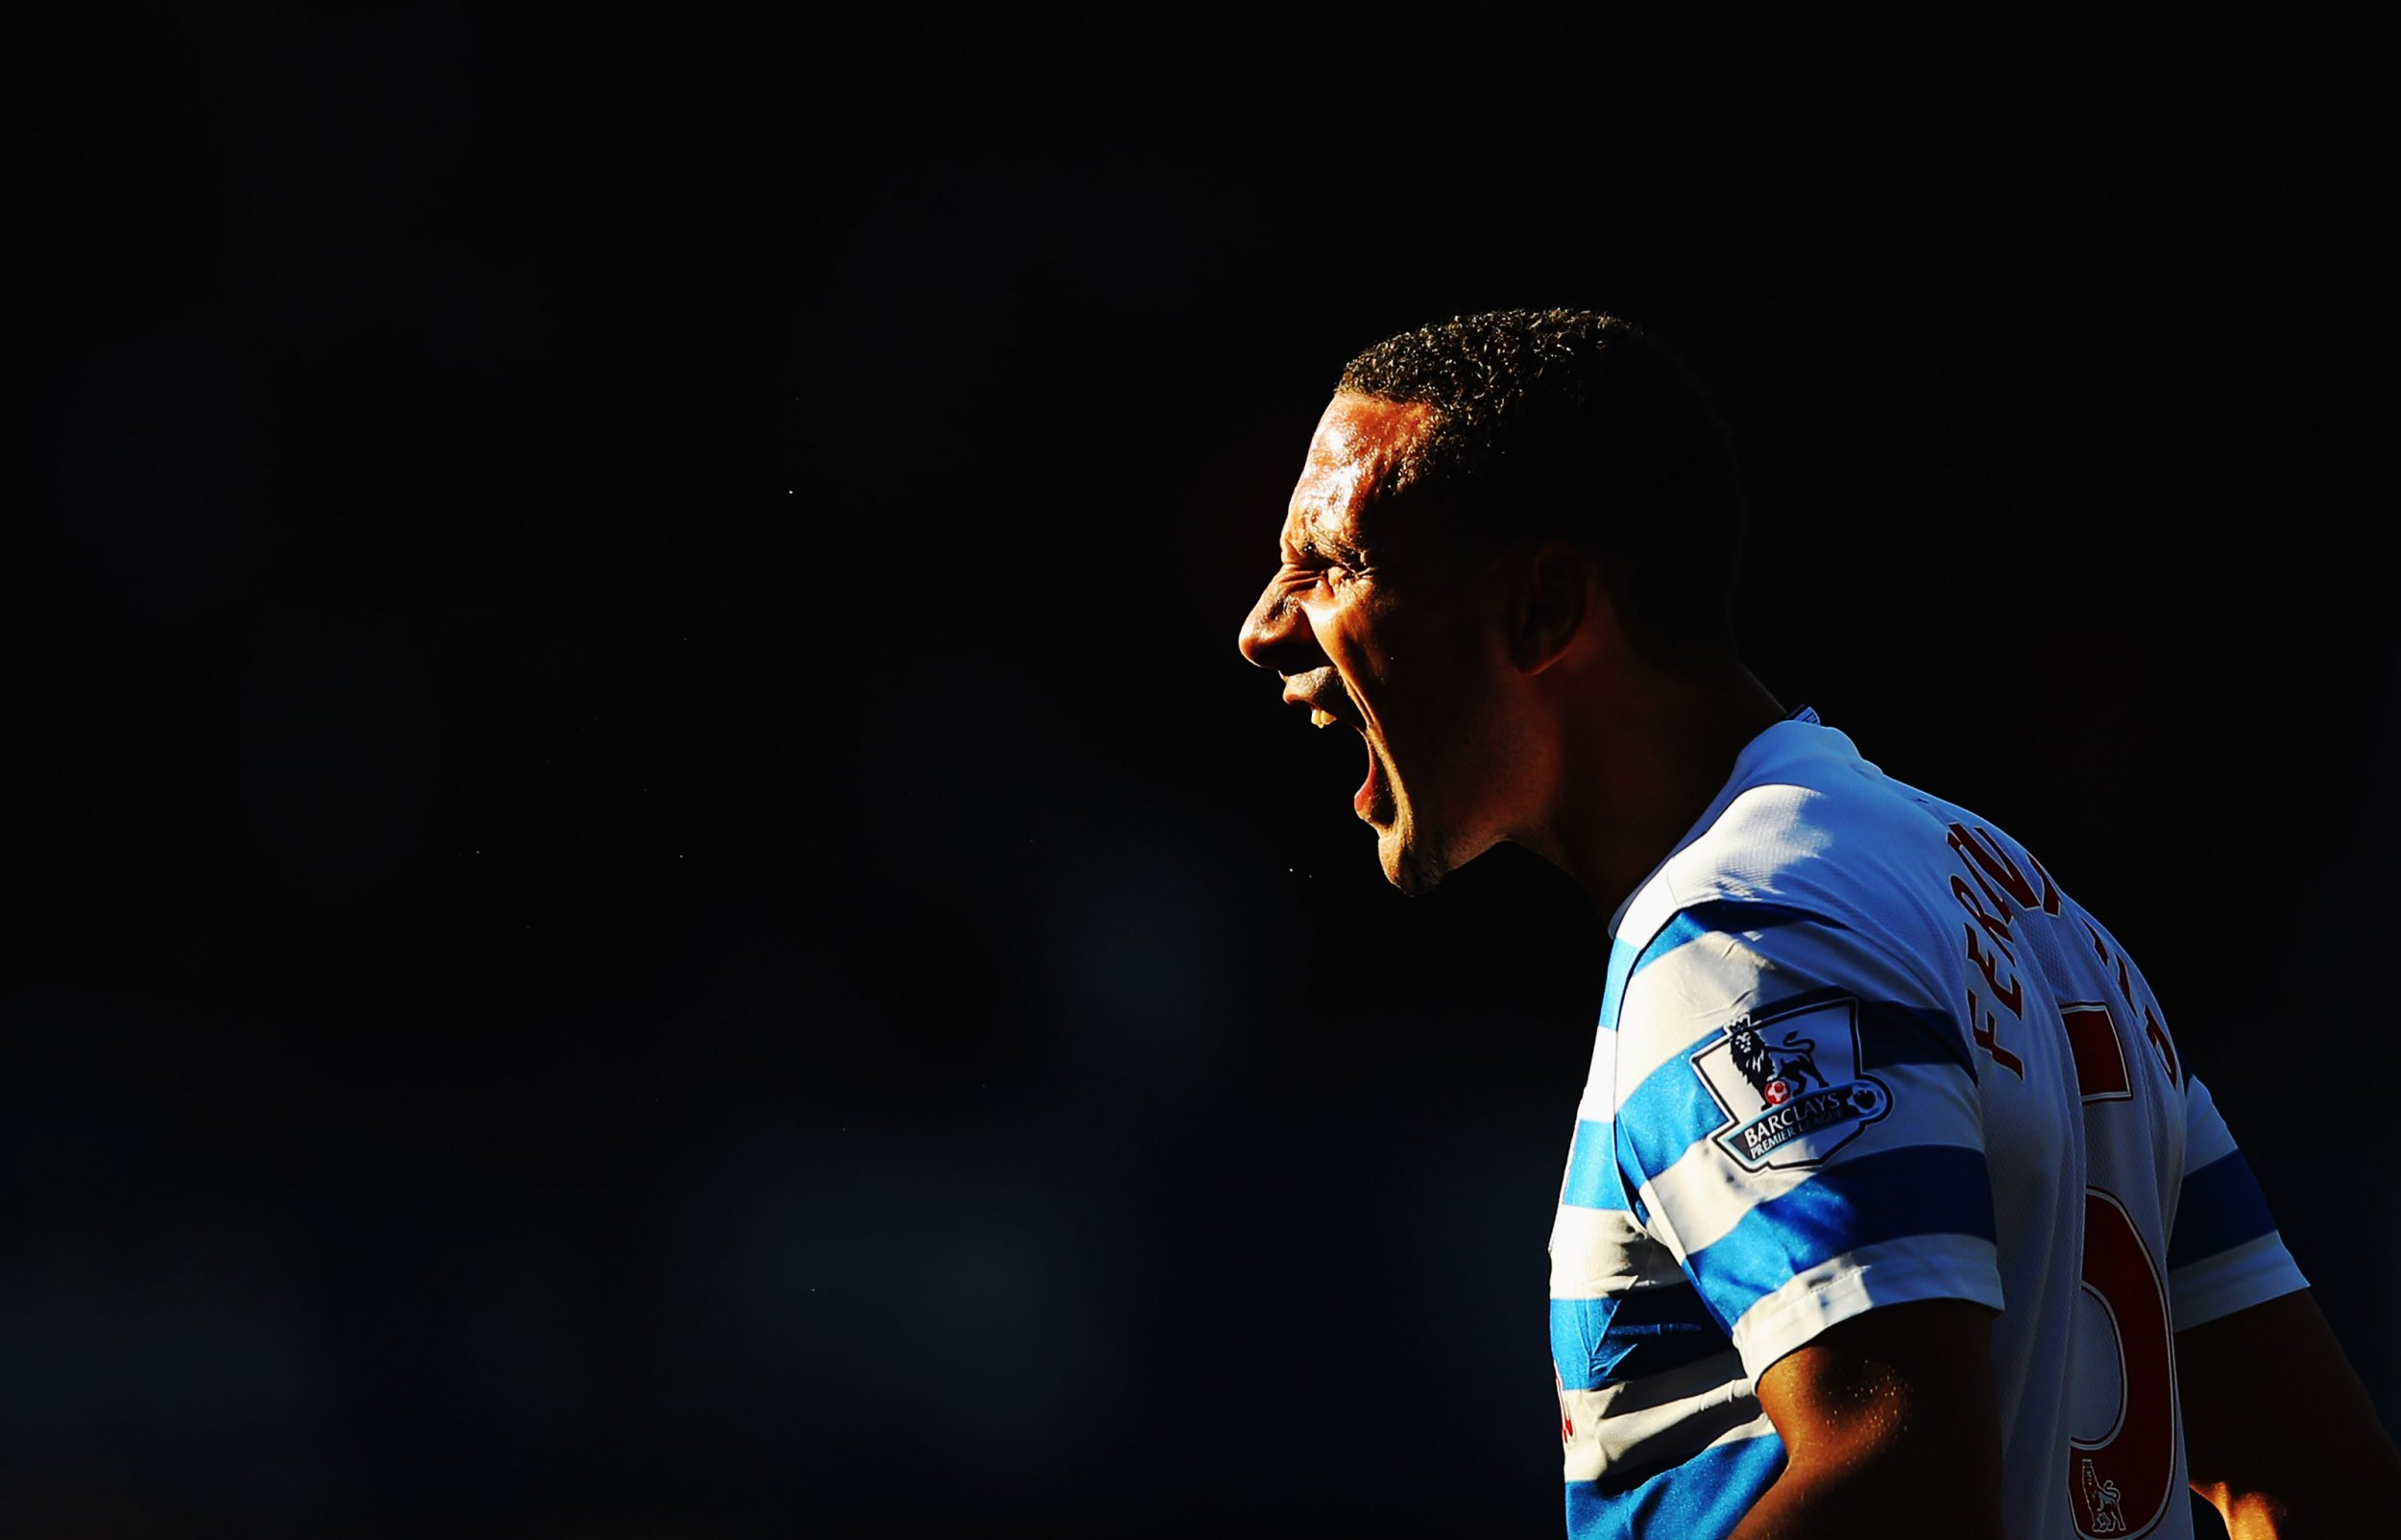 Rio Ferdinand retired from football in the summer of 2015.